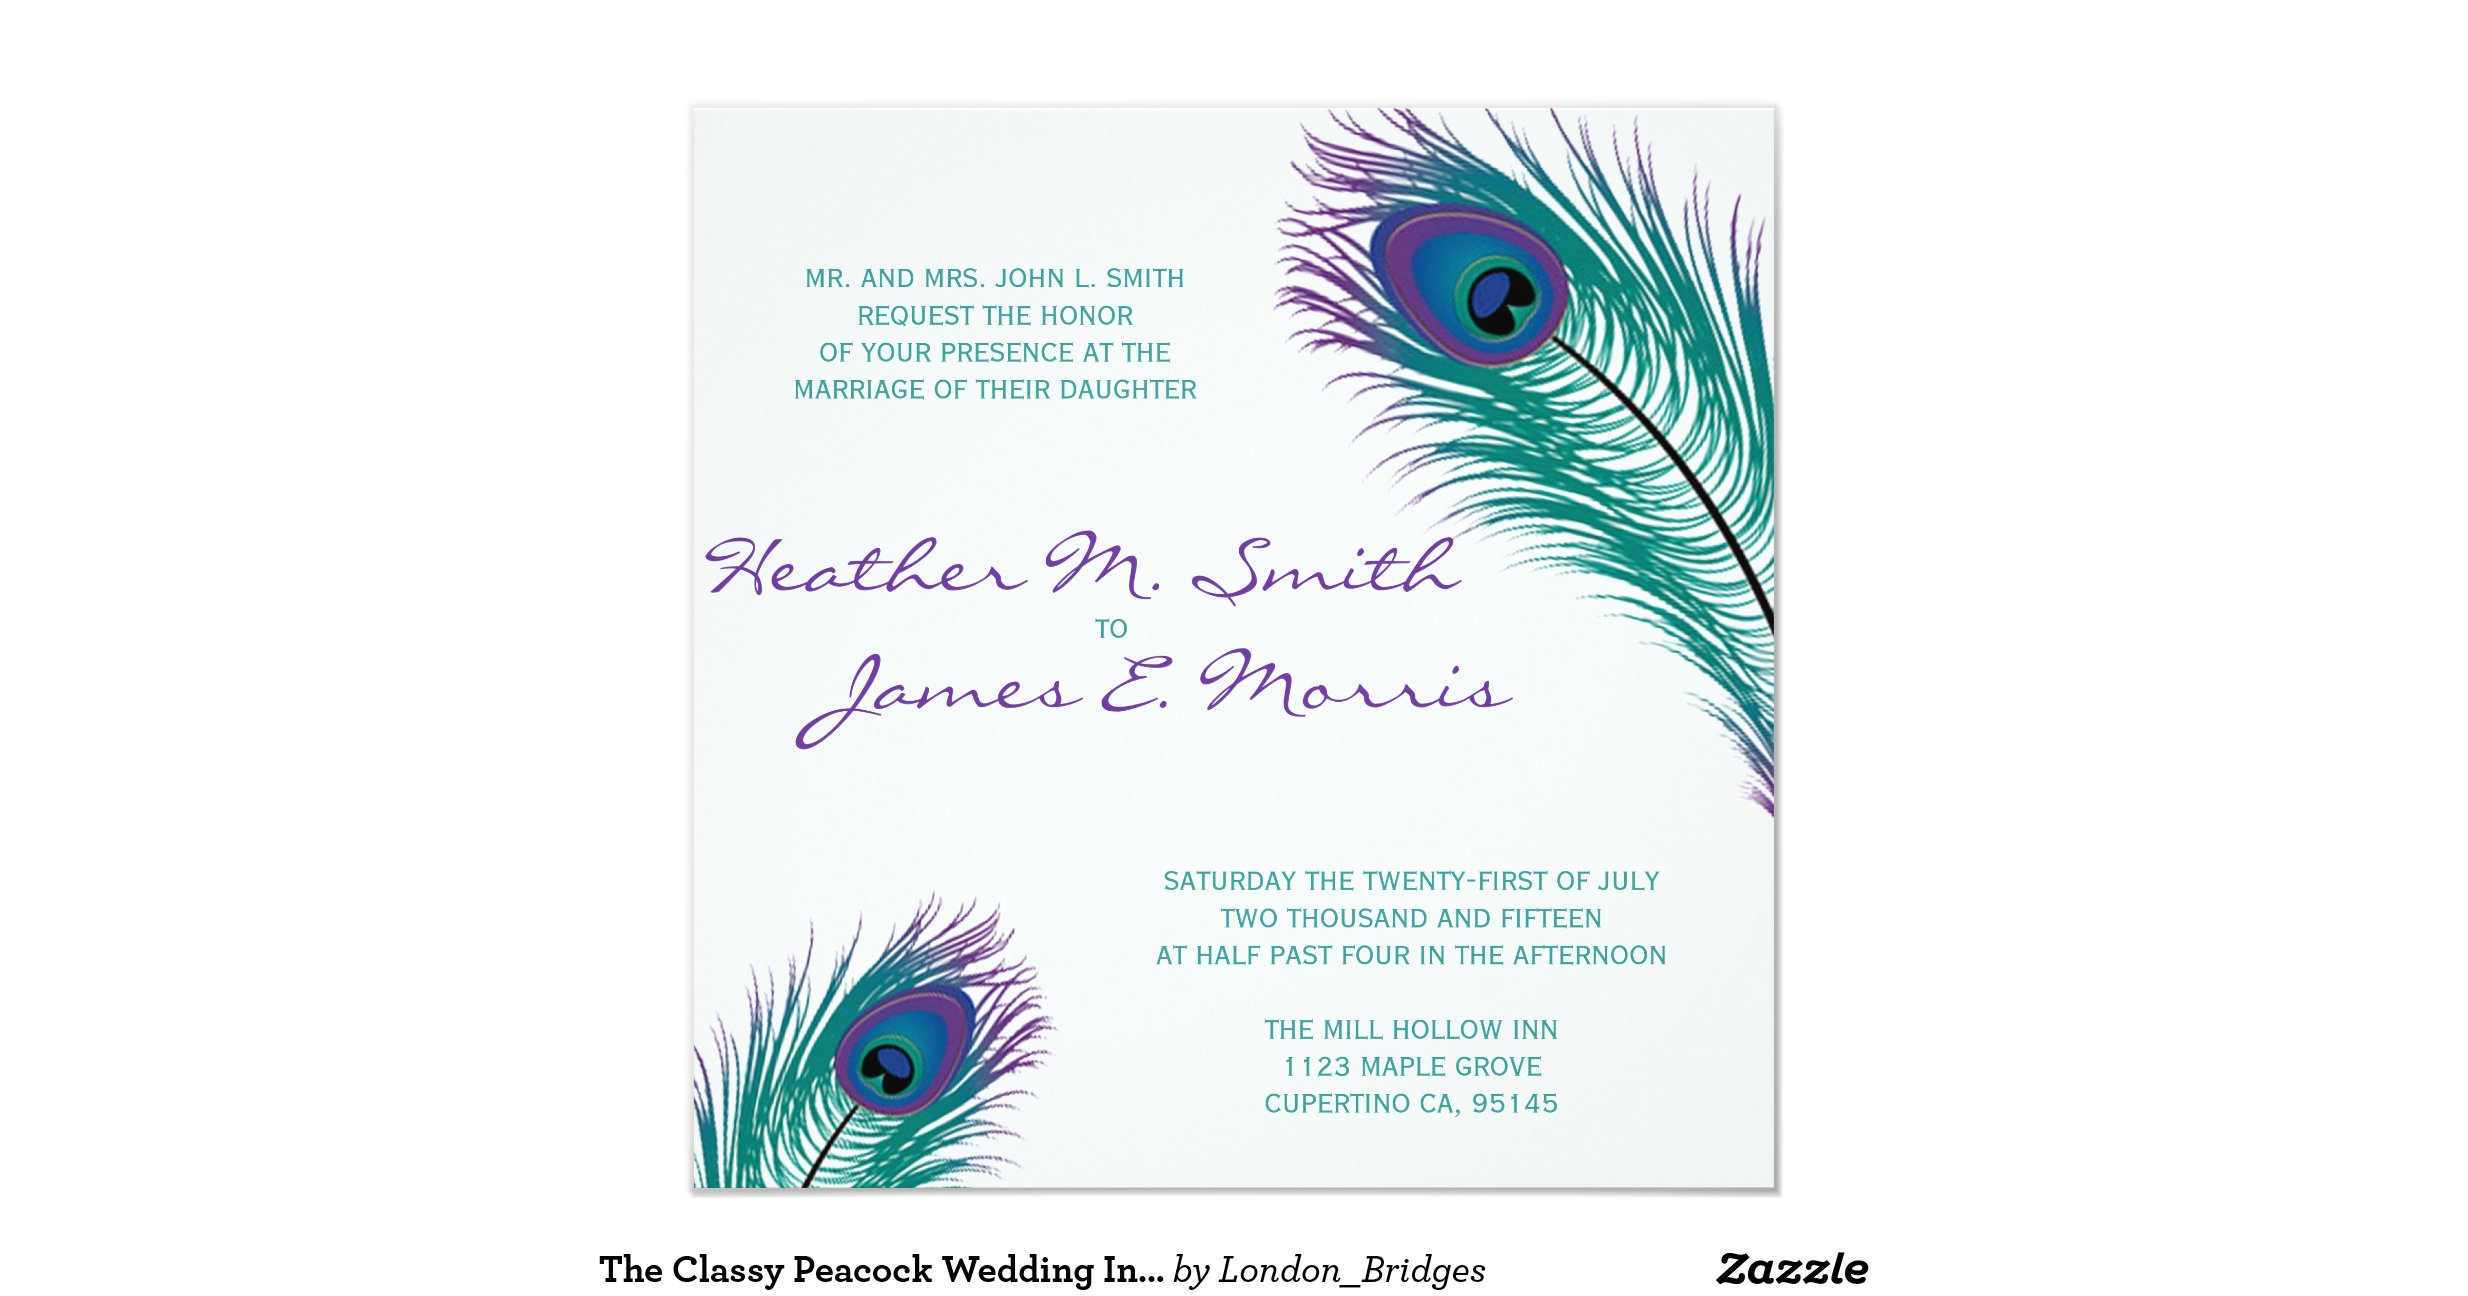 The classy peacock wedding invitation for Peacock wedding invitations with photo